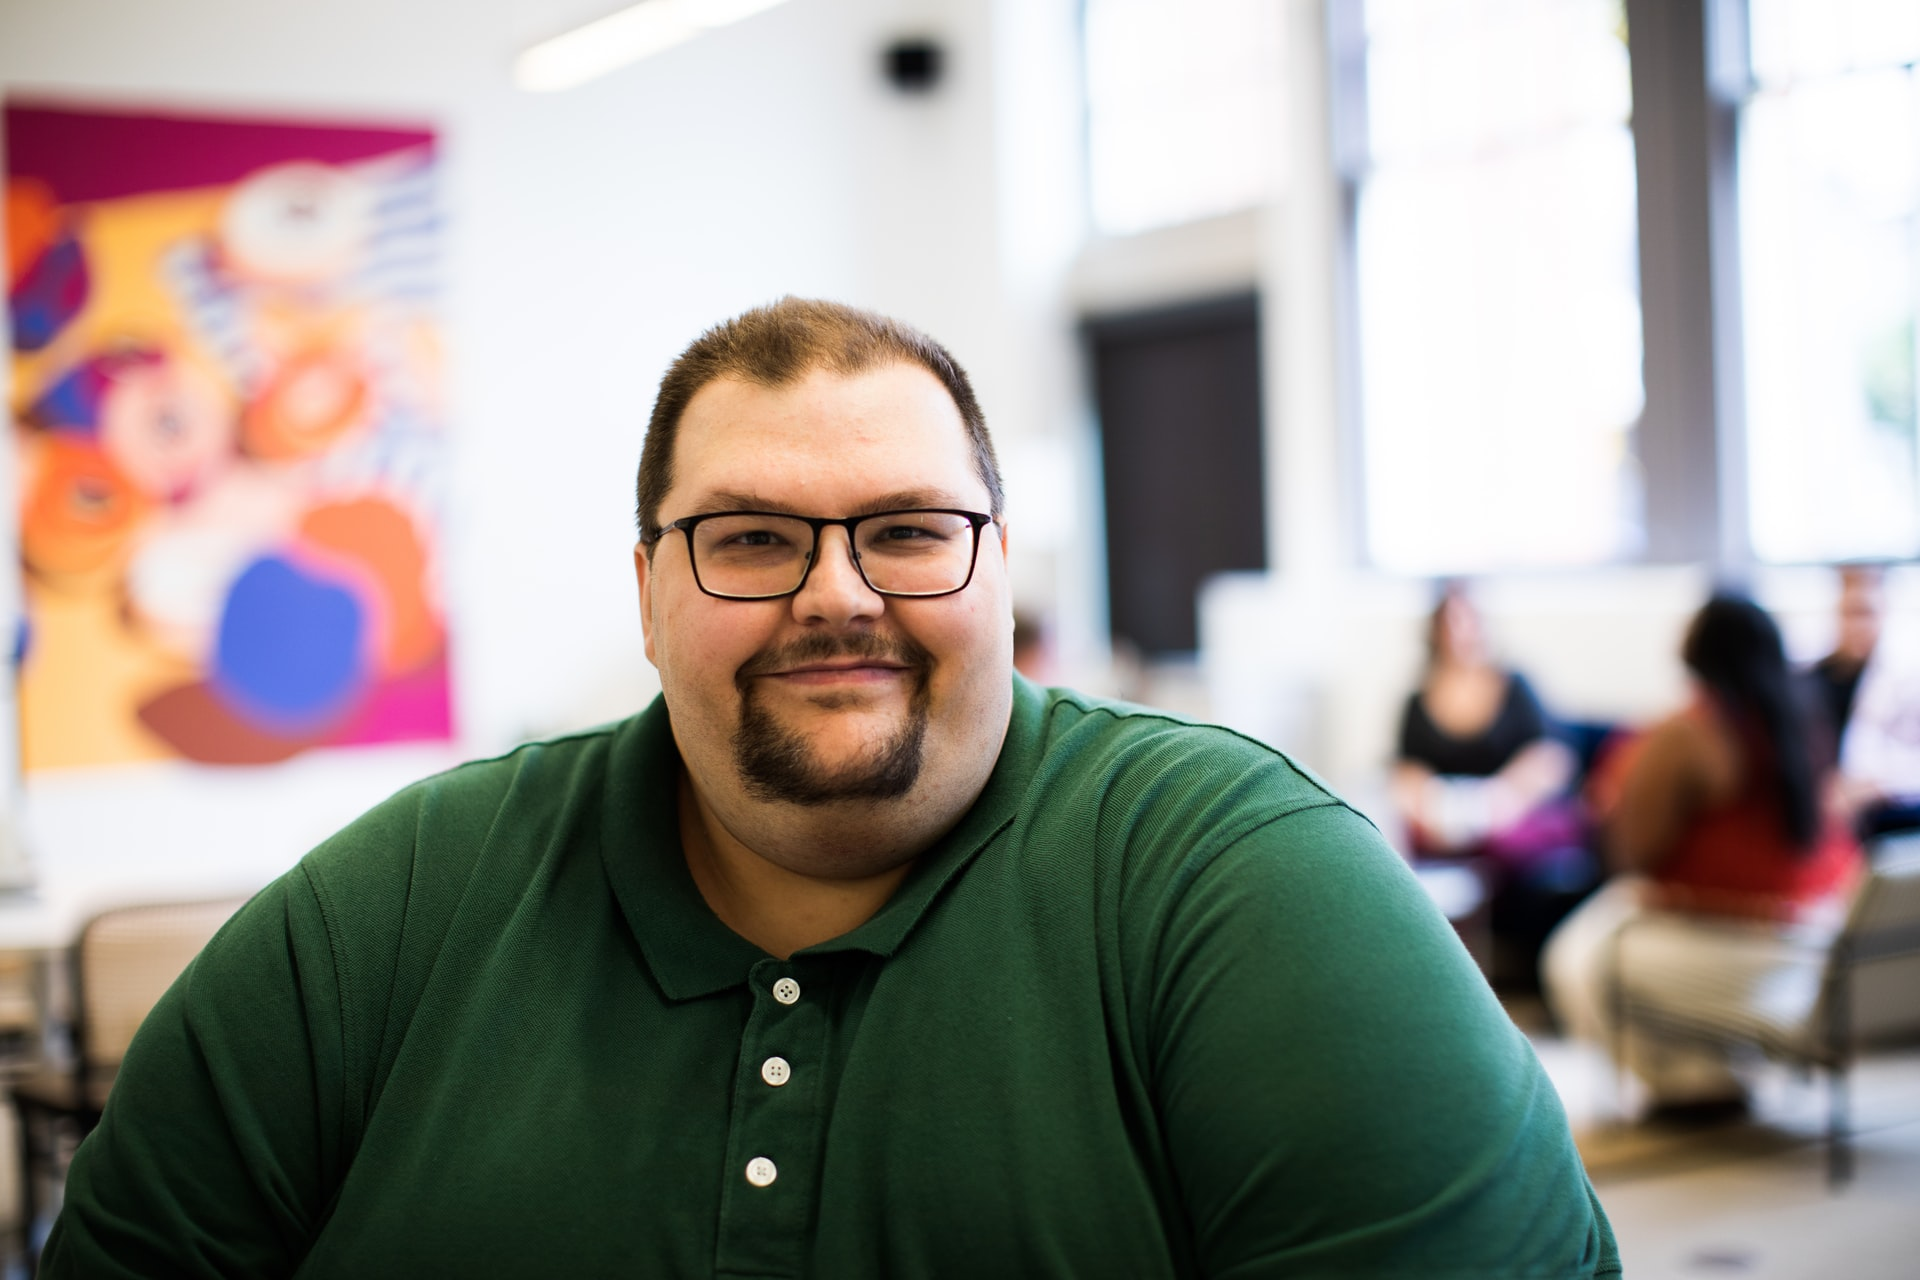 It's Not Easy Being Big: Overweight Men Suffer Discrimination at the Mall and At Work